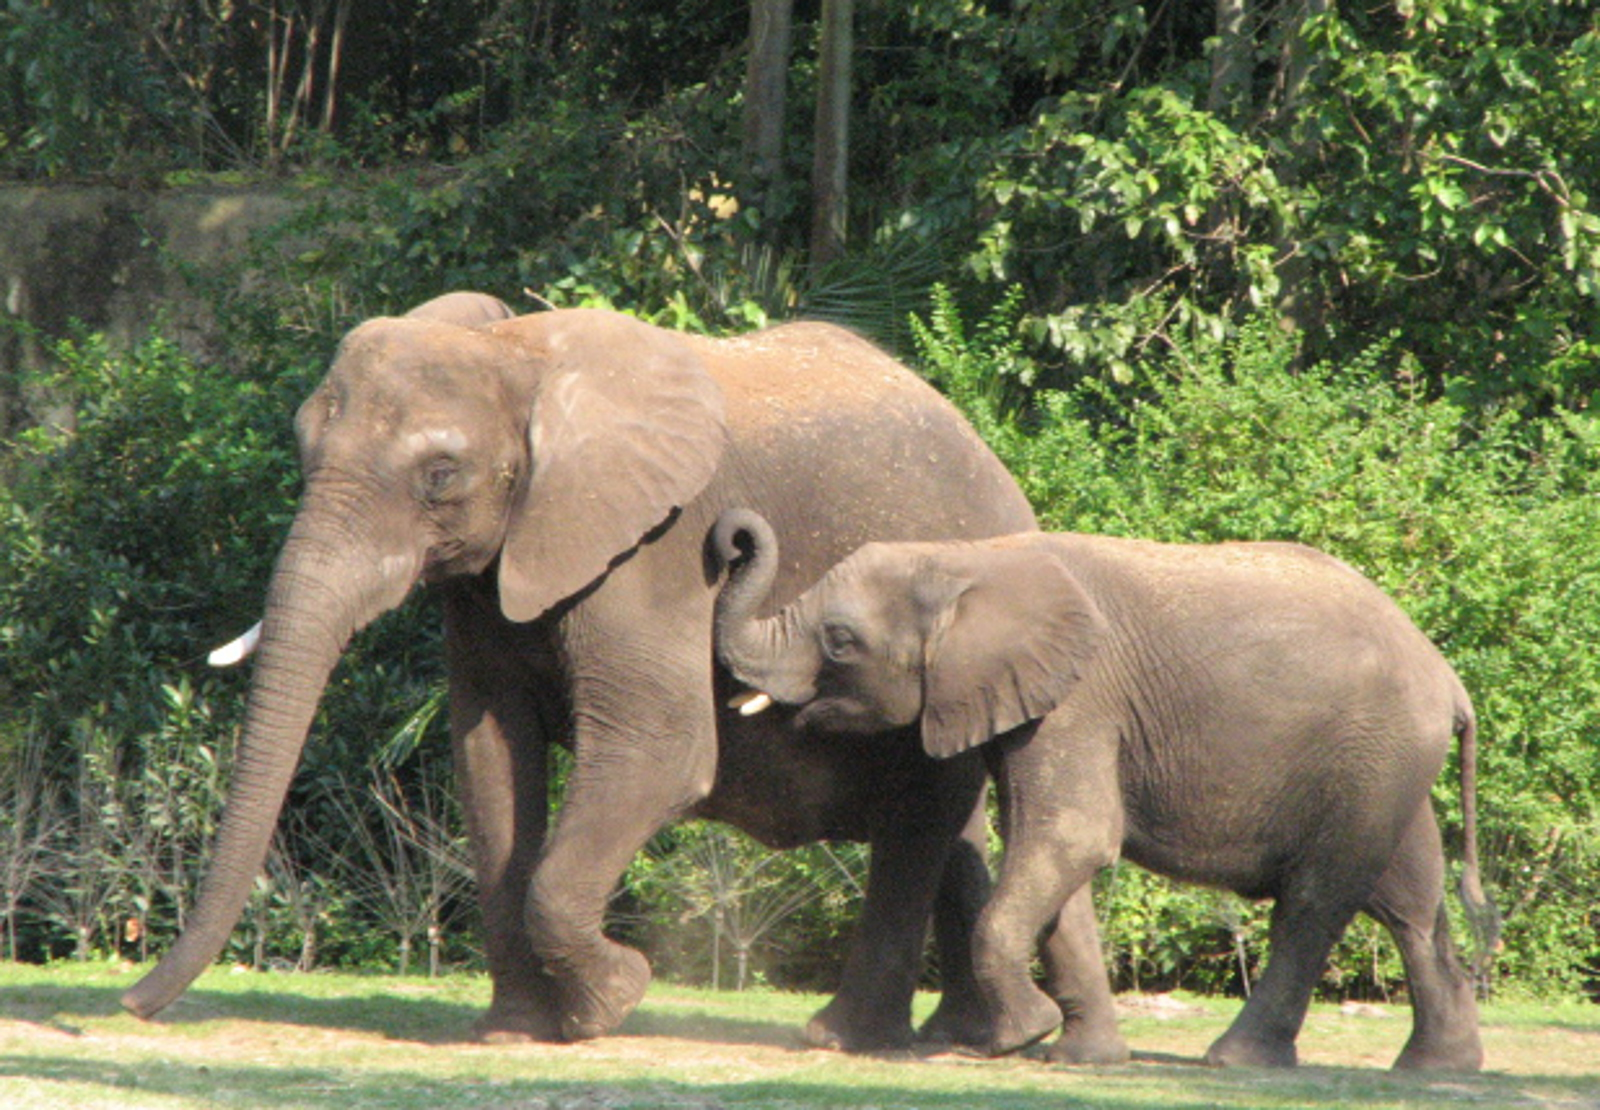 Why Local People Should Protect Elephants